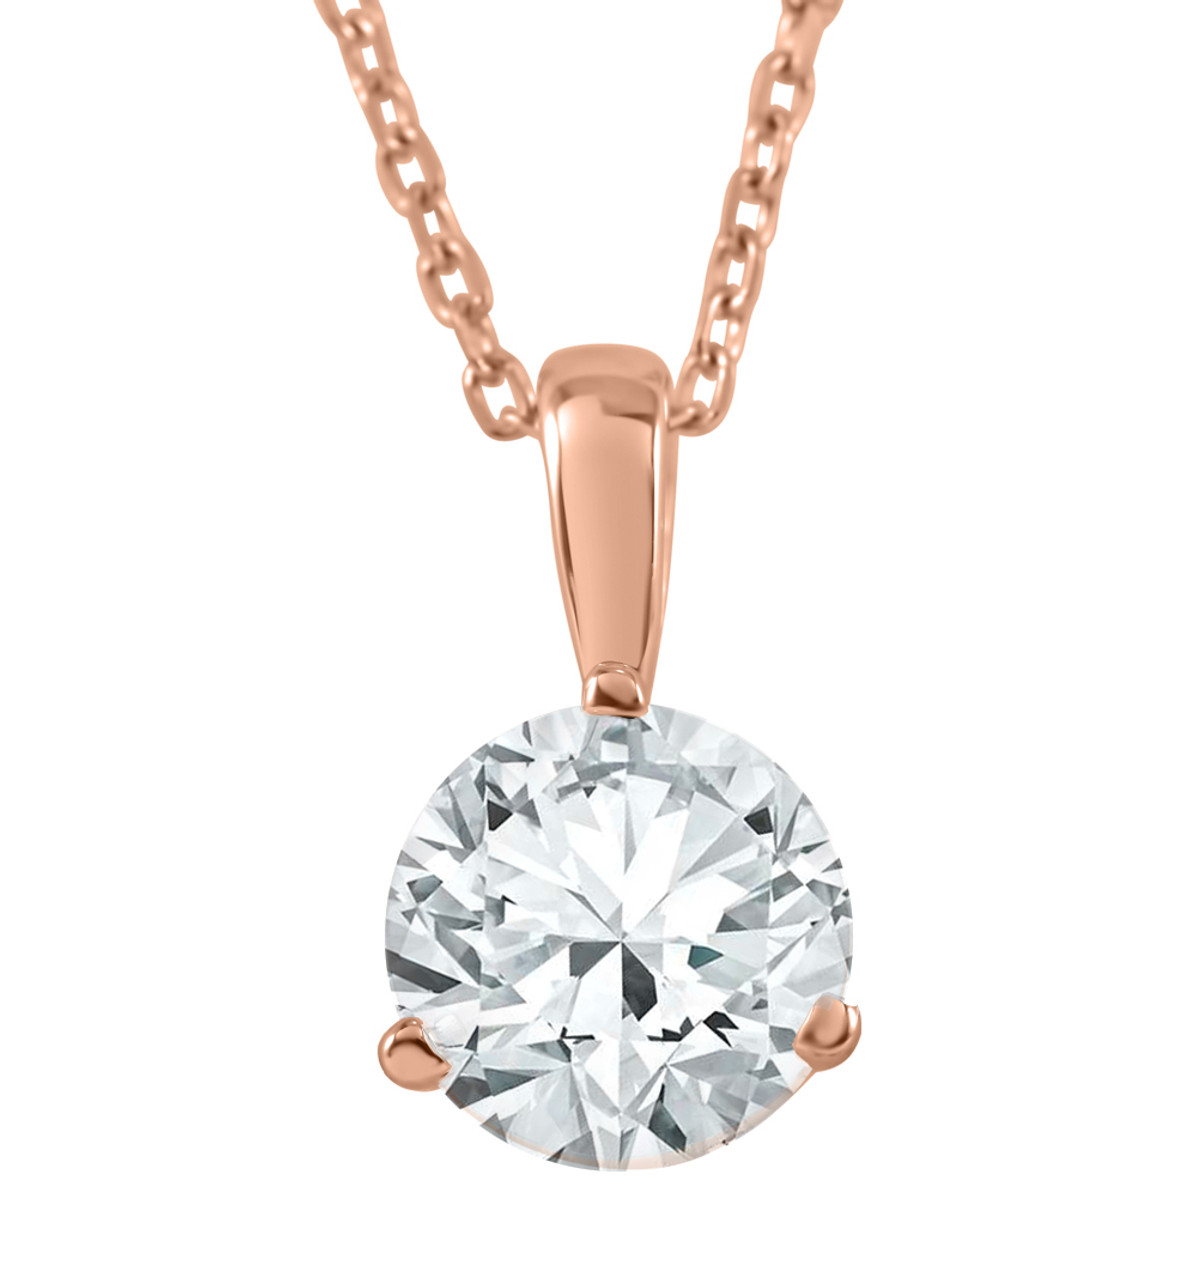 rsp online johnlewis pdp necklace solitaire diamond brilliant white round mogul buymogul pendant at gold main